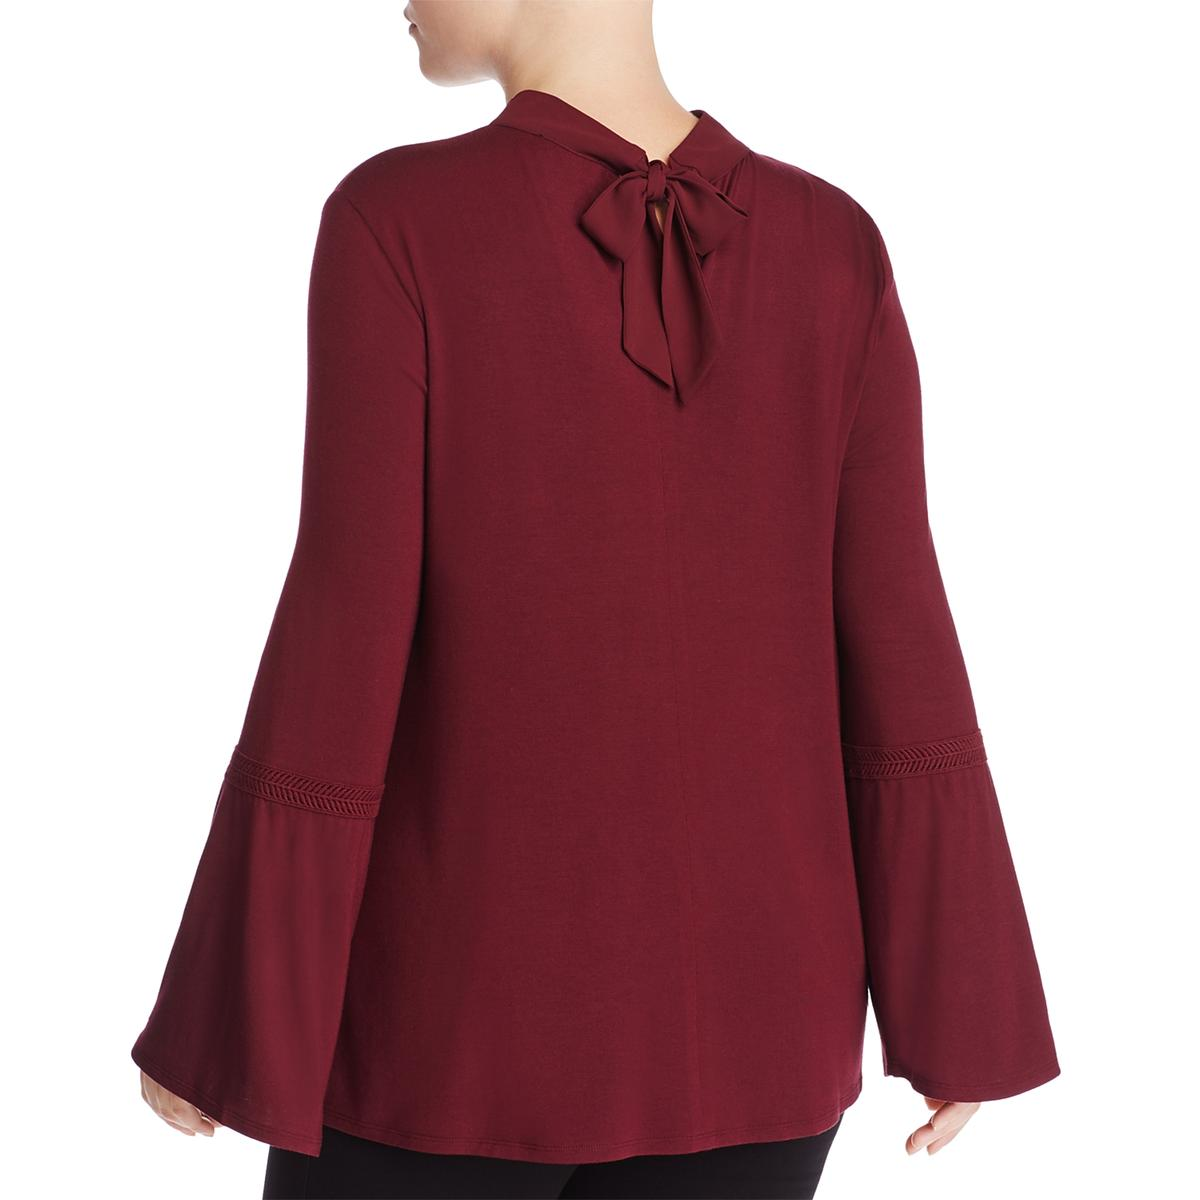 a955fc5bf56b1 Lysse Womens Ainsley Red Embroidered Keyhole Casual Top Blouse Plus ...